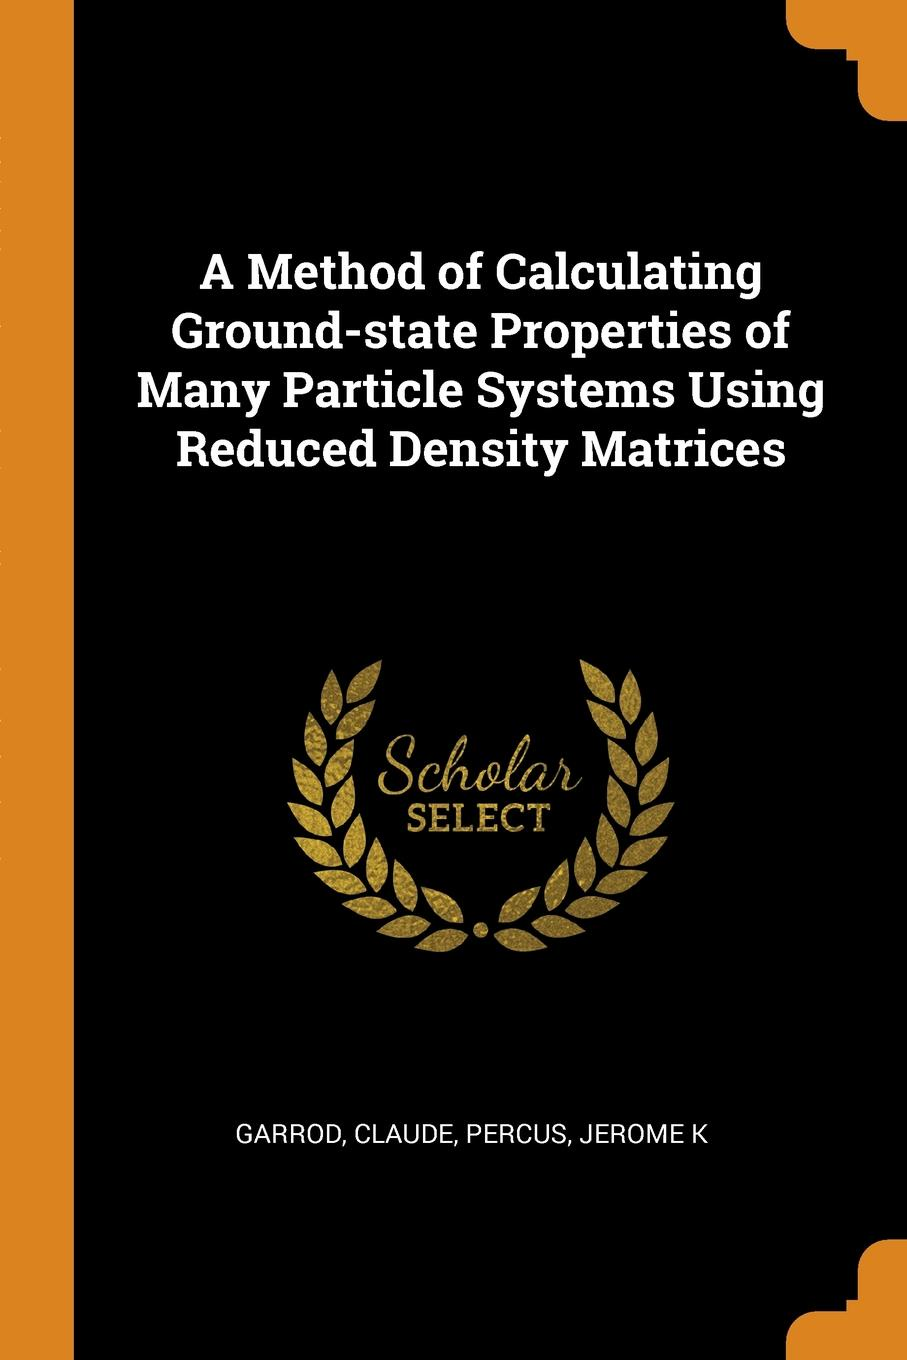 A Method of Calculating Ground-state Properties of Many Particle Systems Using Reduced Density Matrices